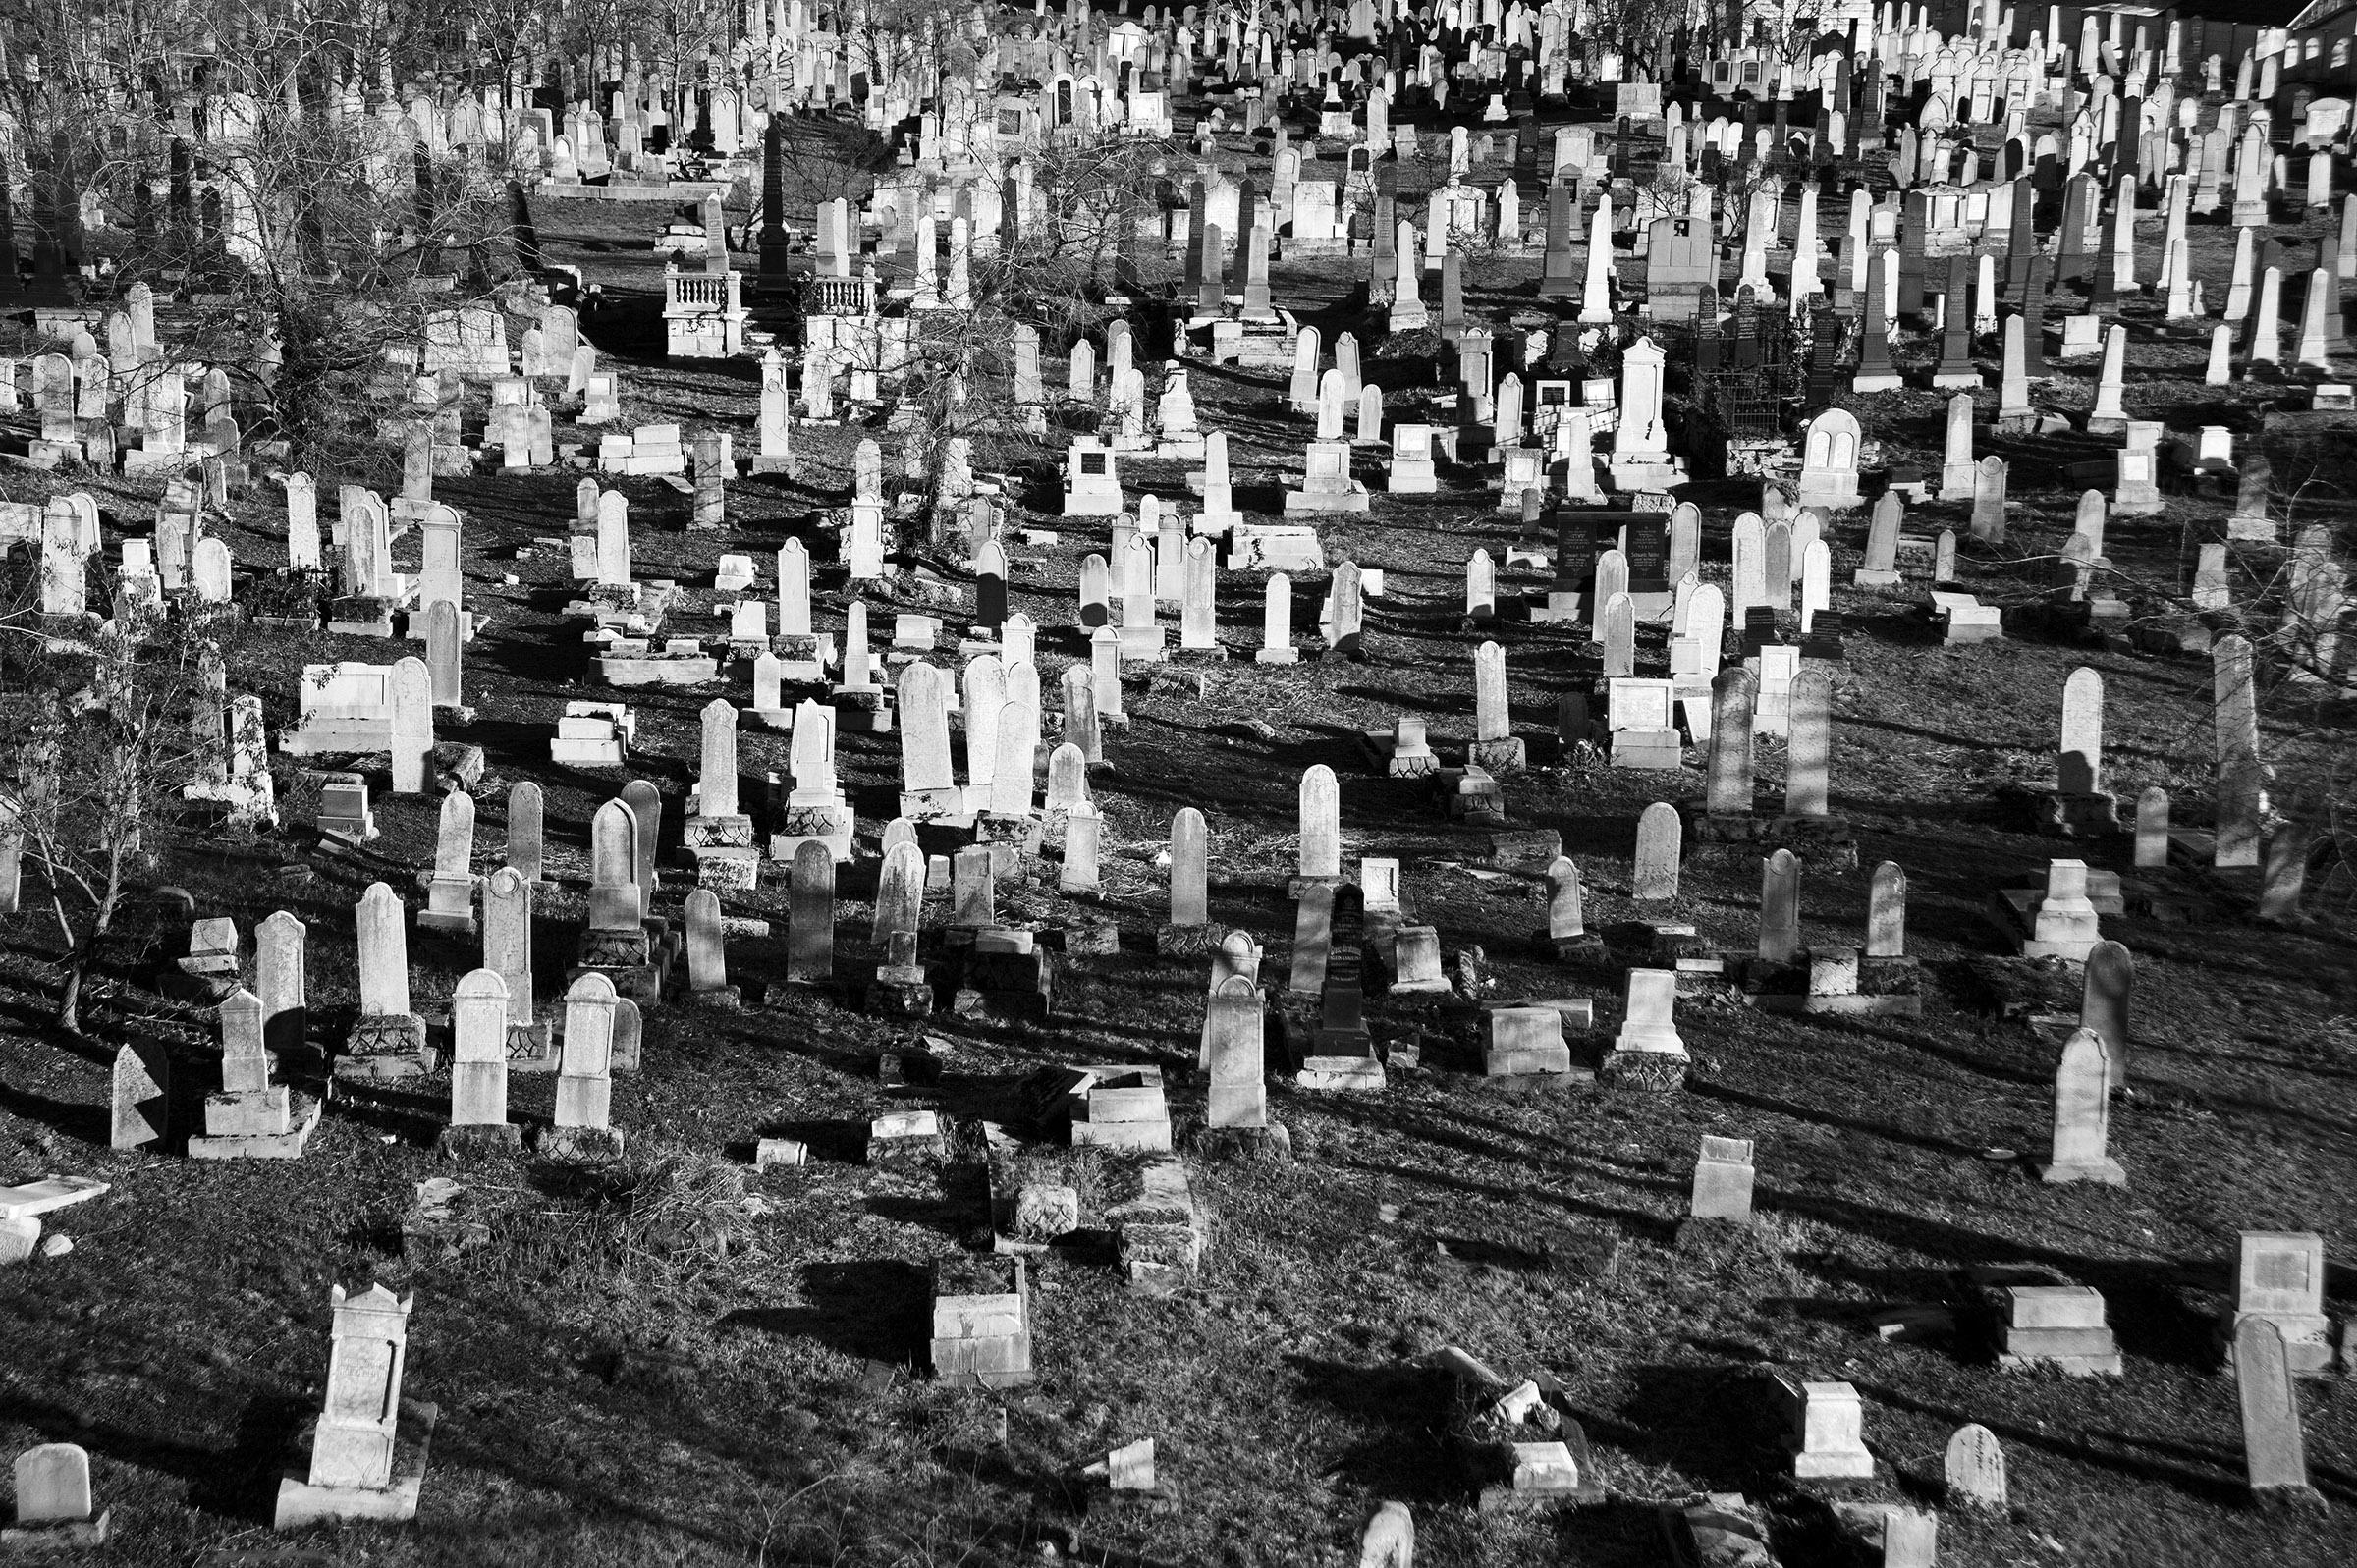 The Jewish Orthodox Cemetery in Velenta, situated in eastern Oradea, sets inactive since 1952 and holds around four thousand graves; January 13, 2015. The oldest Jewish cemetery in Oradea, some of the tombstones predate the 19th century and most are falling into disrepair. (Photo by Daniel Owen/GroundTruth)